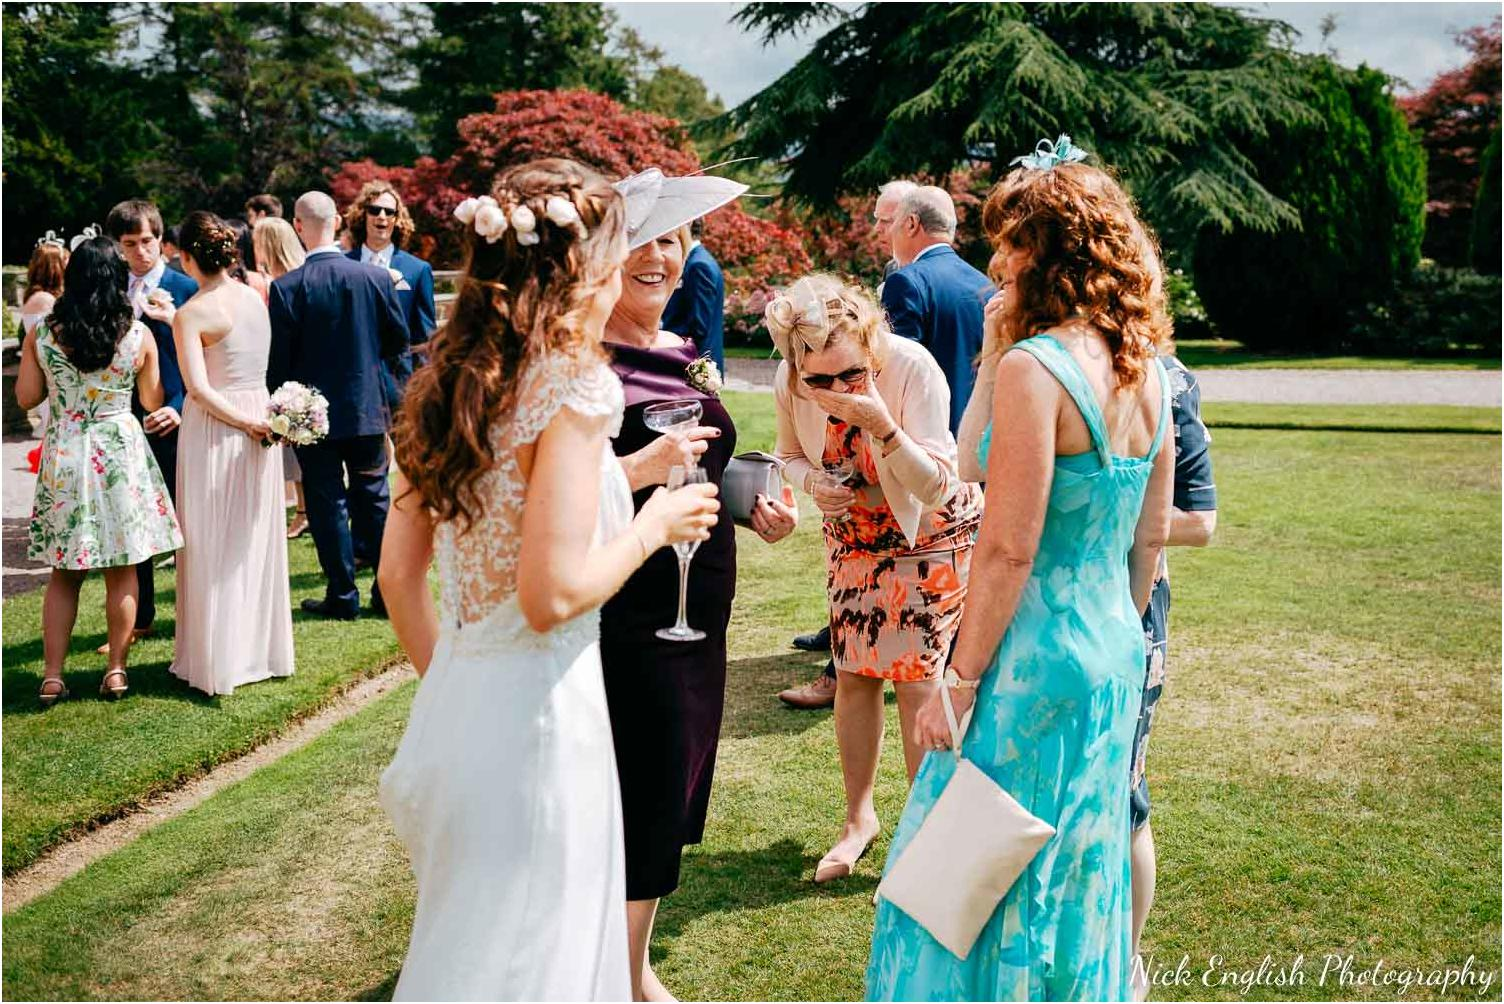 Eaves_Hall_Outdoor_Wedding_Photographs-136.jpg